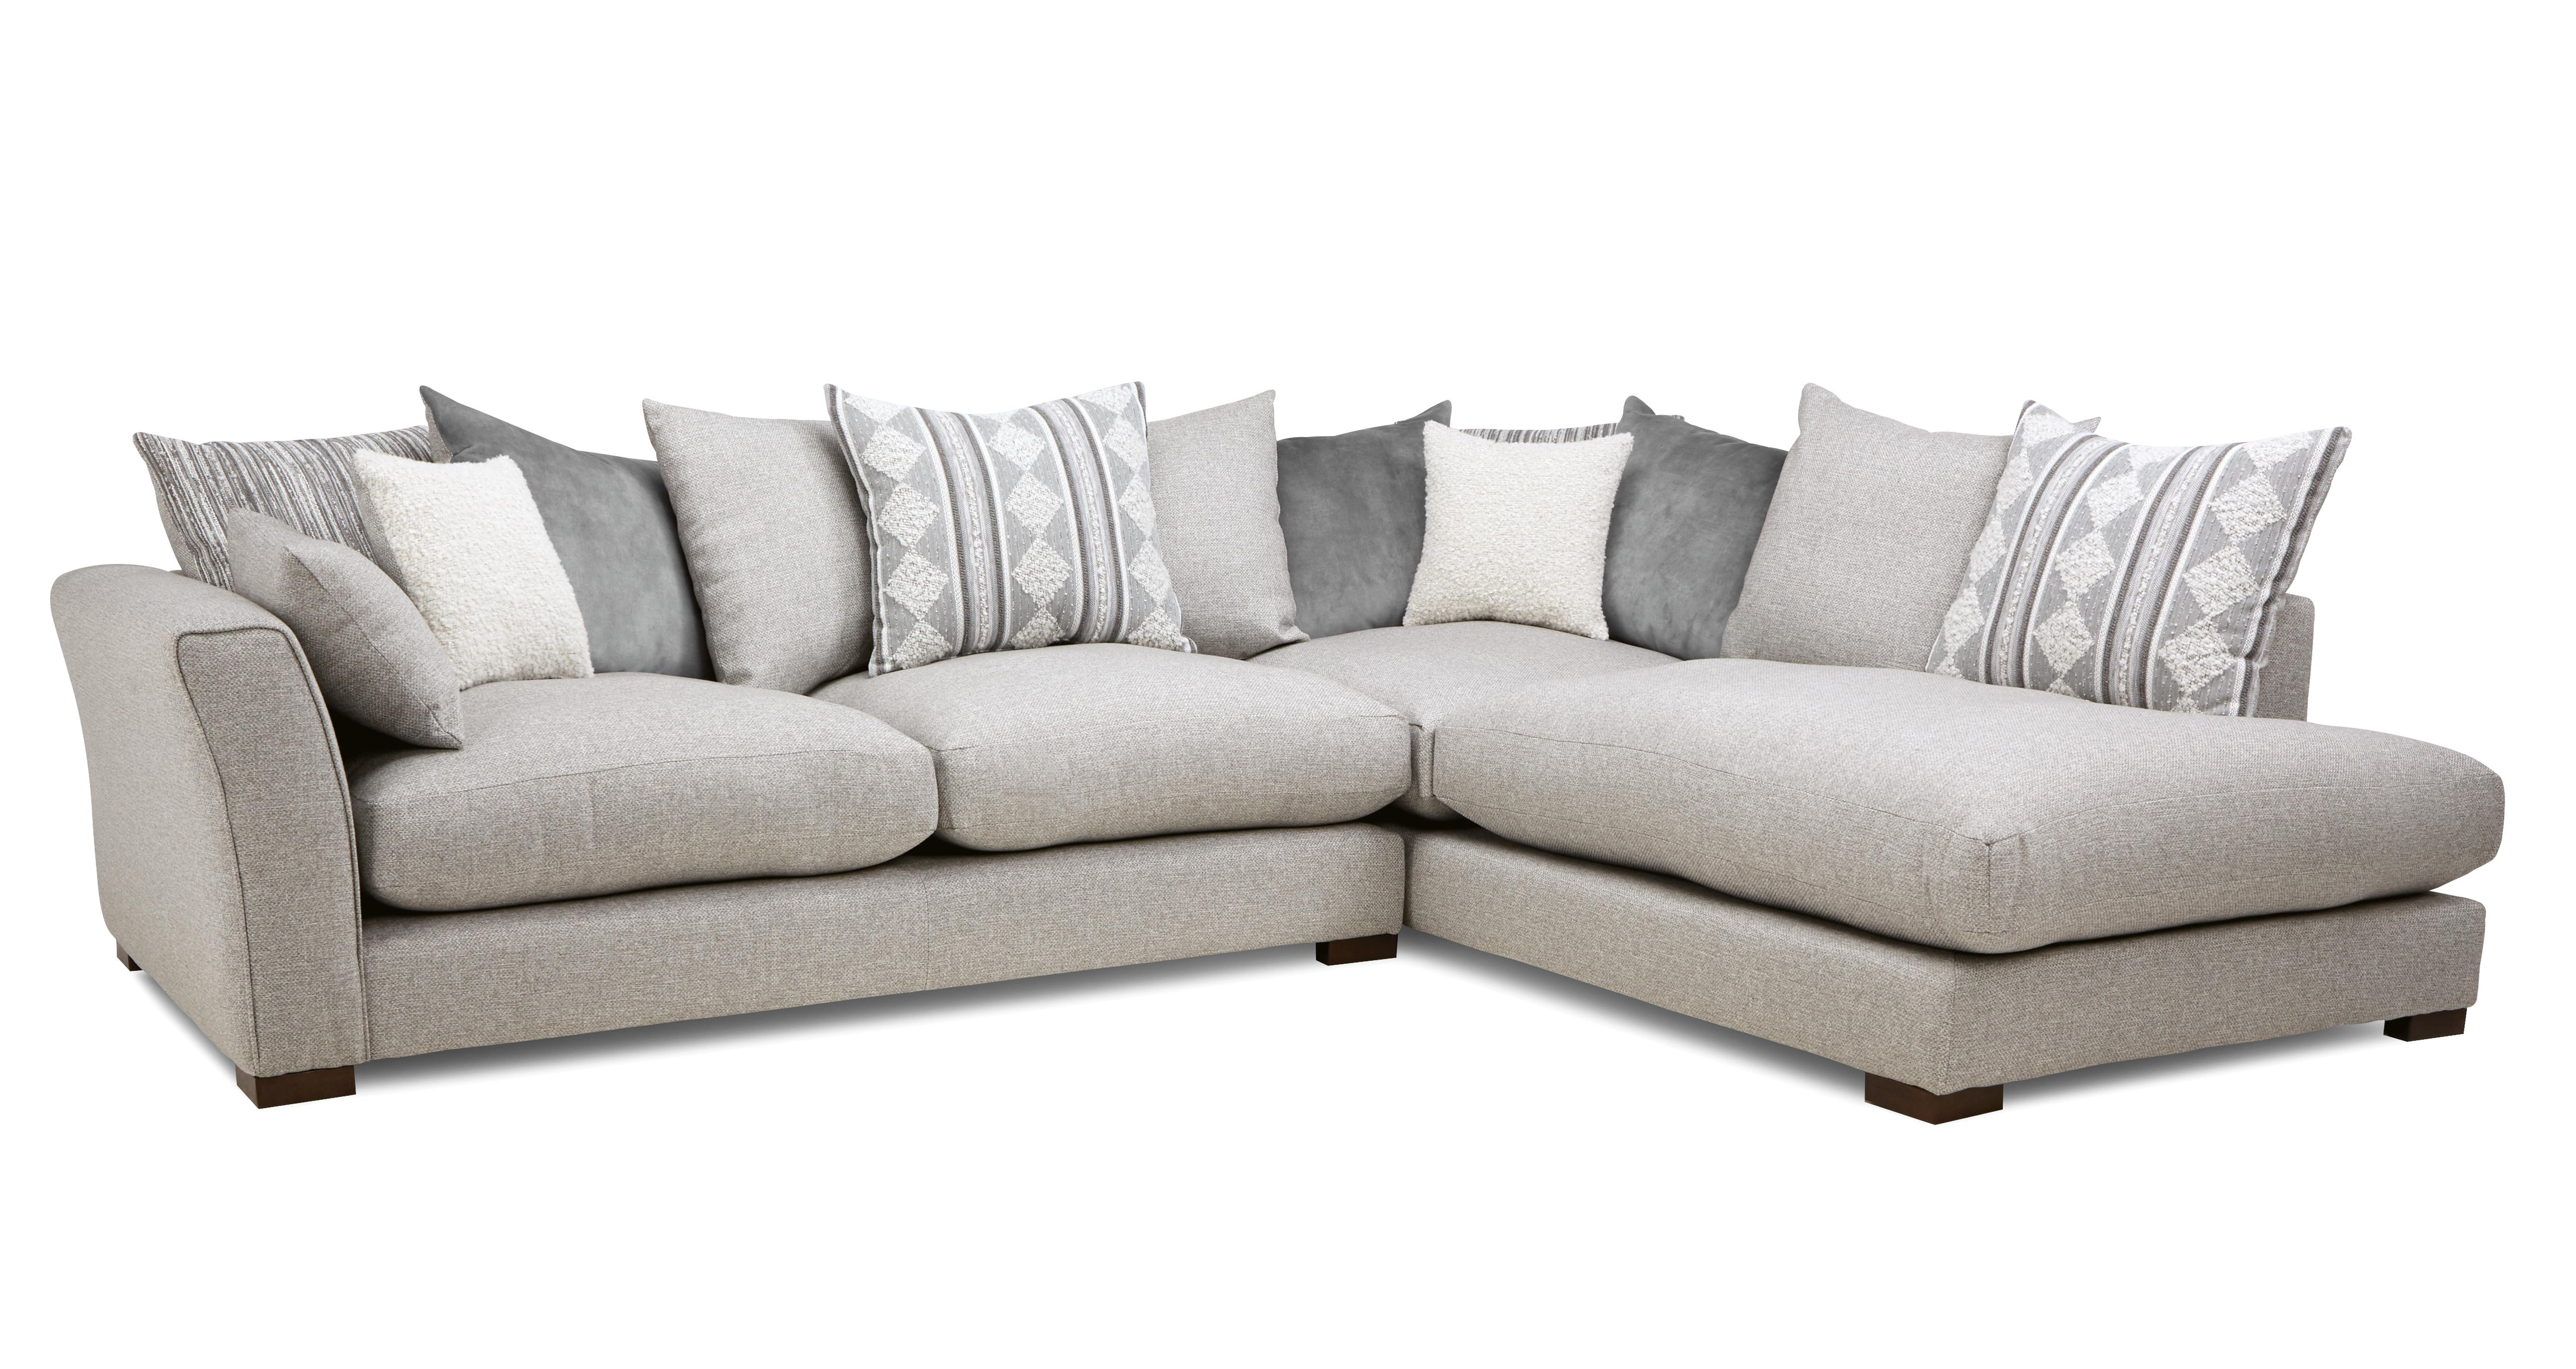 Witton Pillow Back Left Hand Facing Arm Large Corner Group Dfs